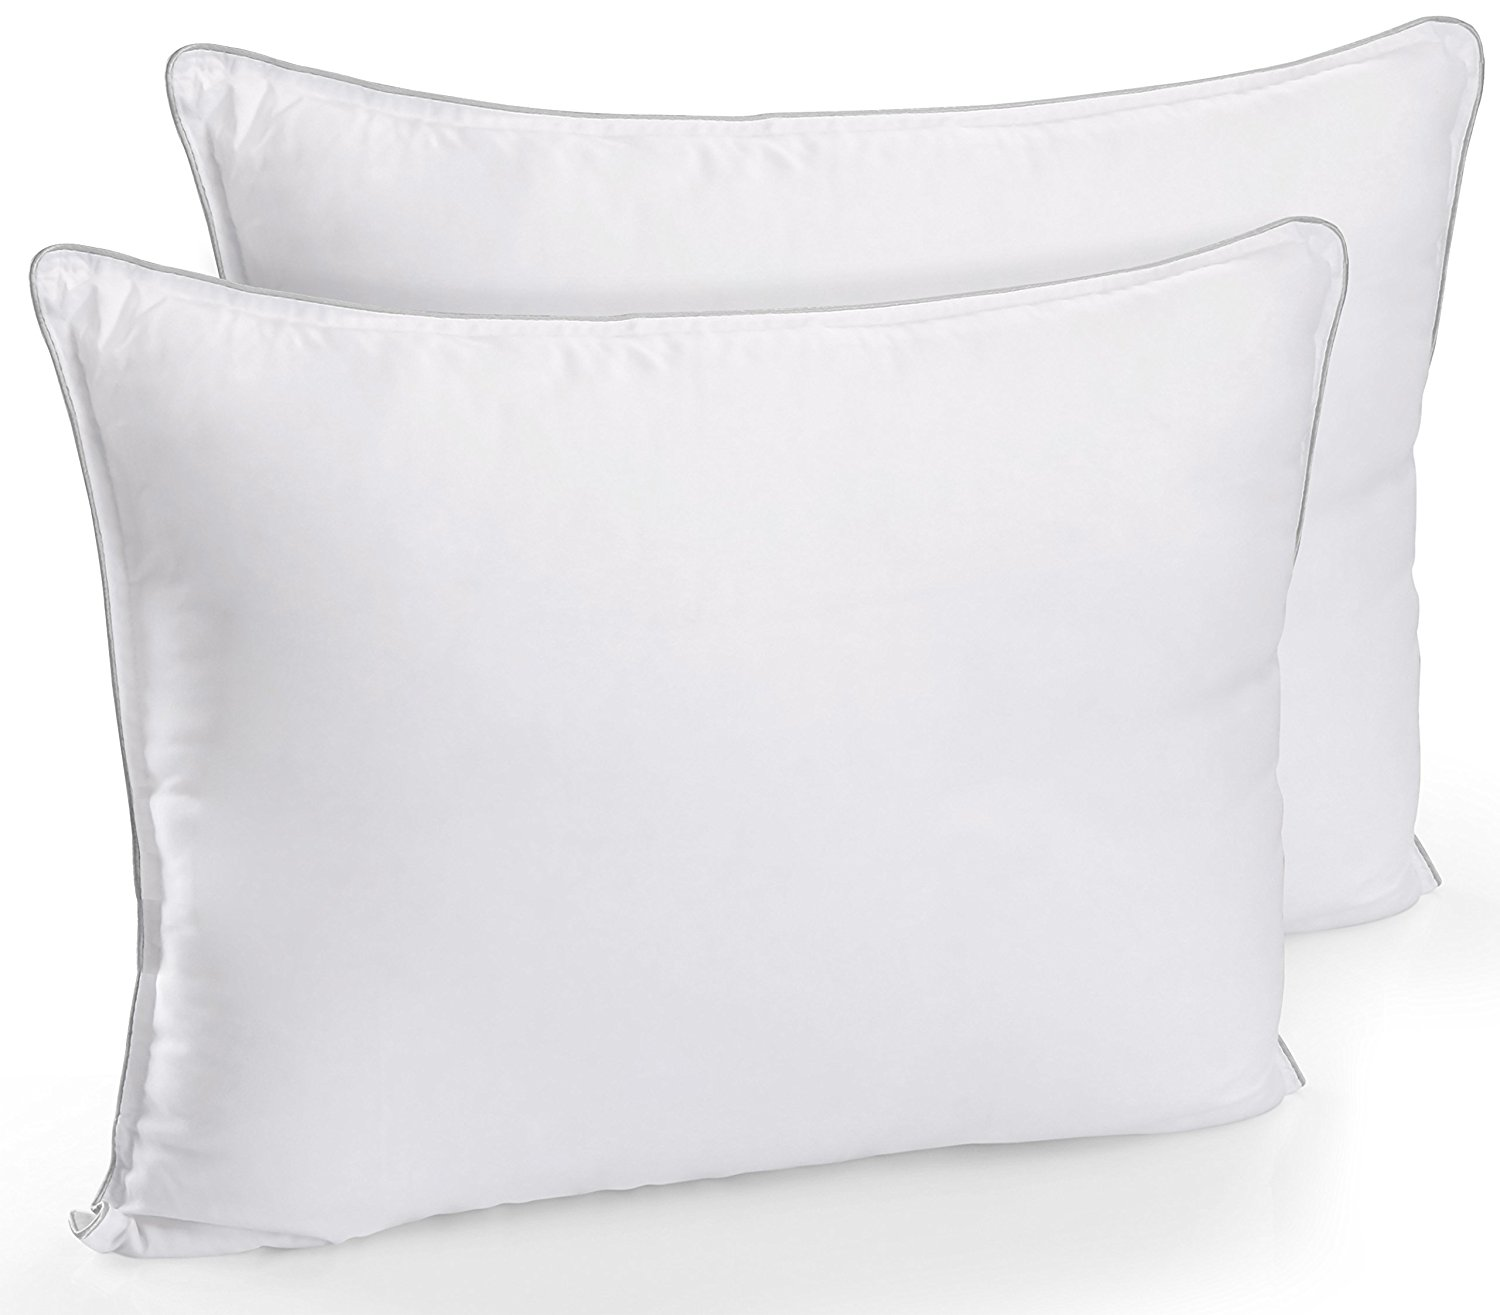 Utopia Bedding Extra Lush Fiber Polyester Filled Bed Pillows Pure Polyester – Hollow Siliconized Filling Material Retains The Shape (Pack of 2, Queen)